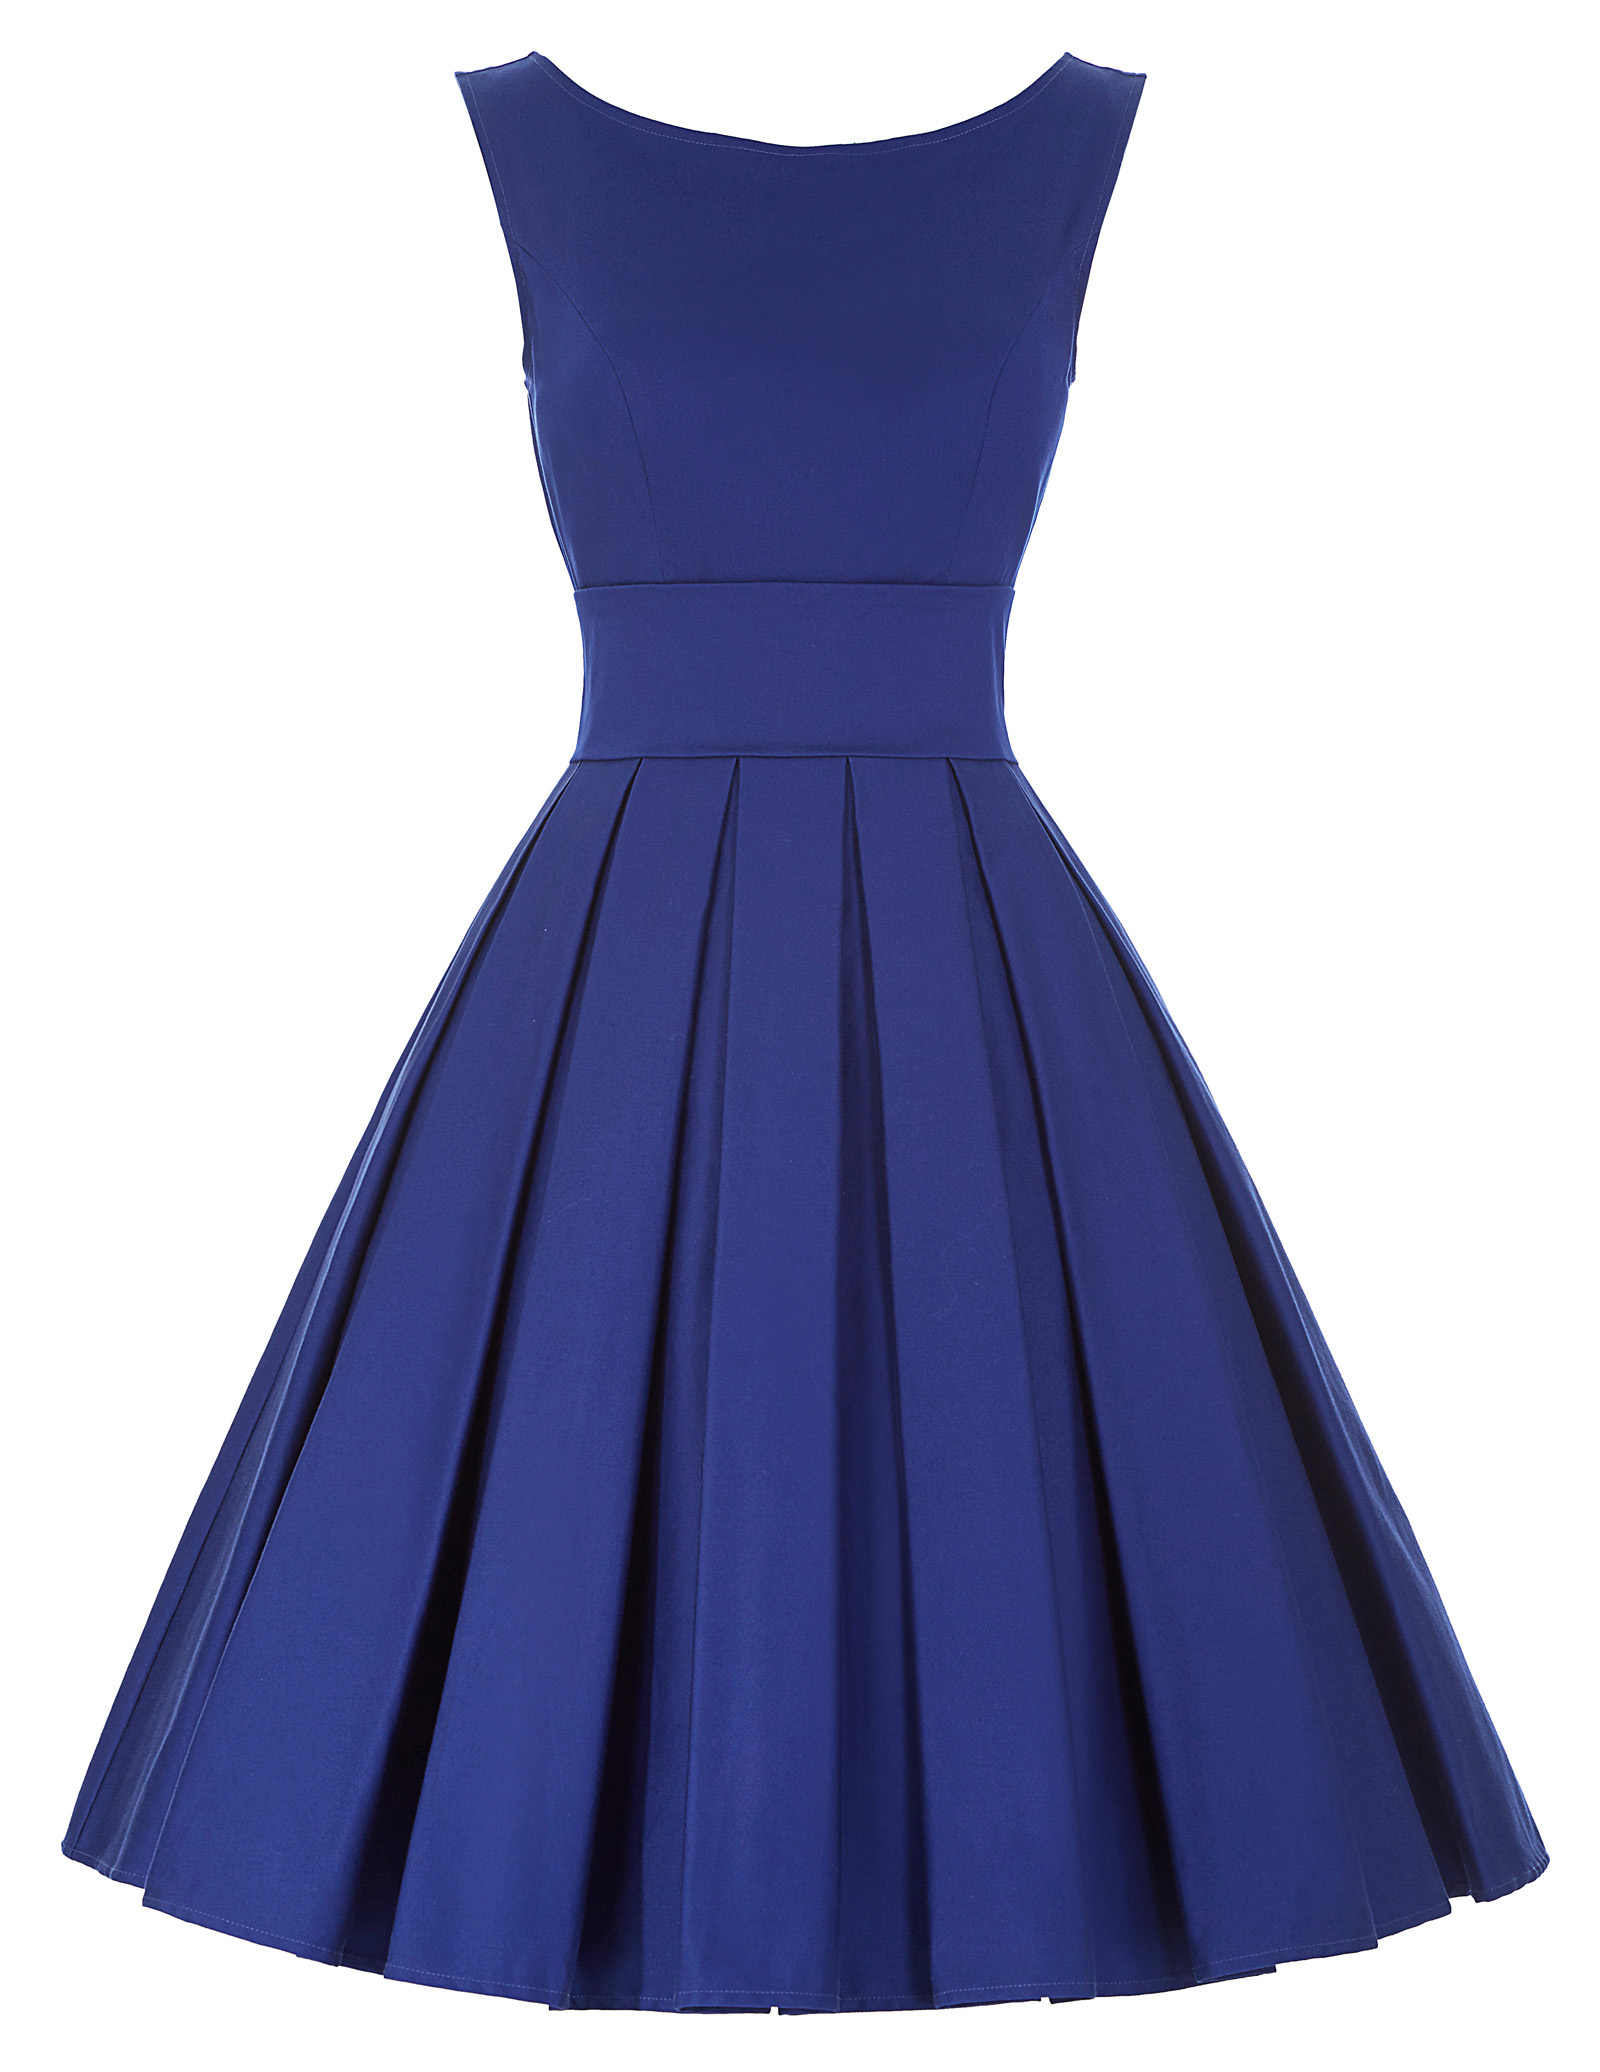 Women 50 s 60 s Vintage Retro Housewife Dress Swing Flared Pinup Dresses 7fe0c26257fa